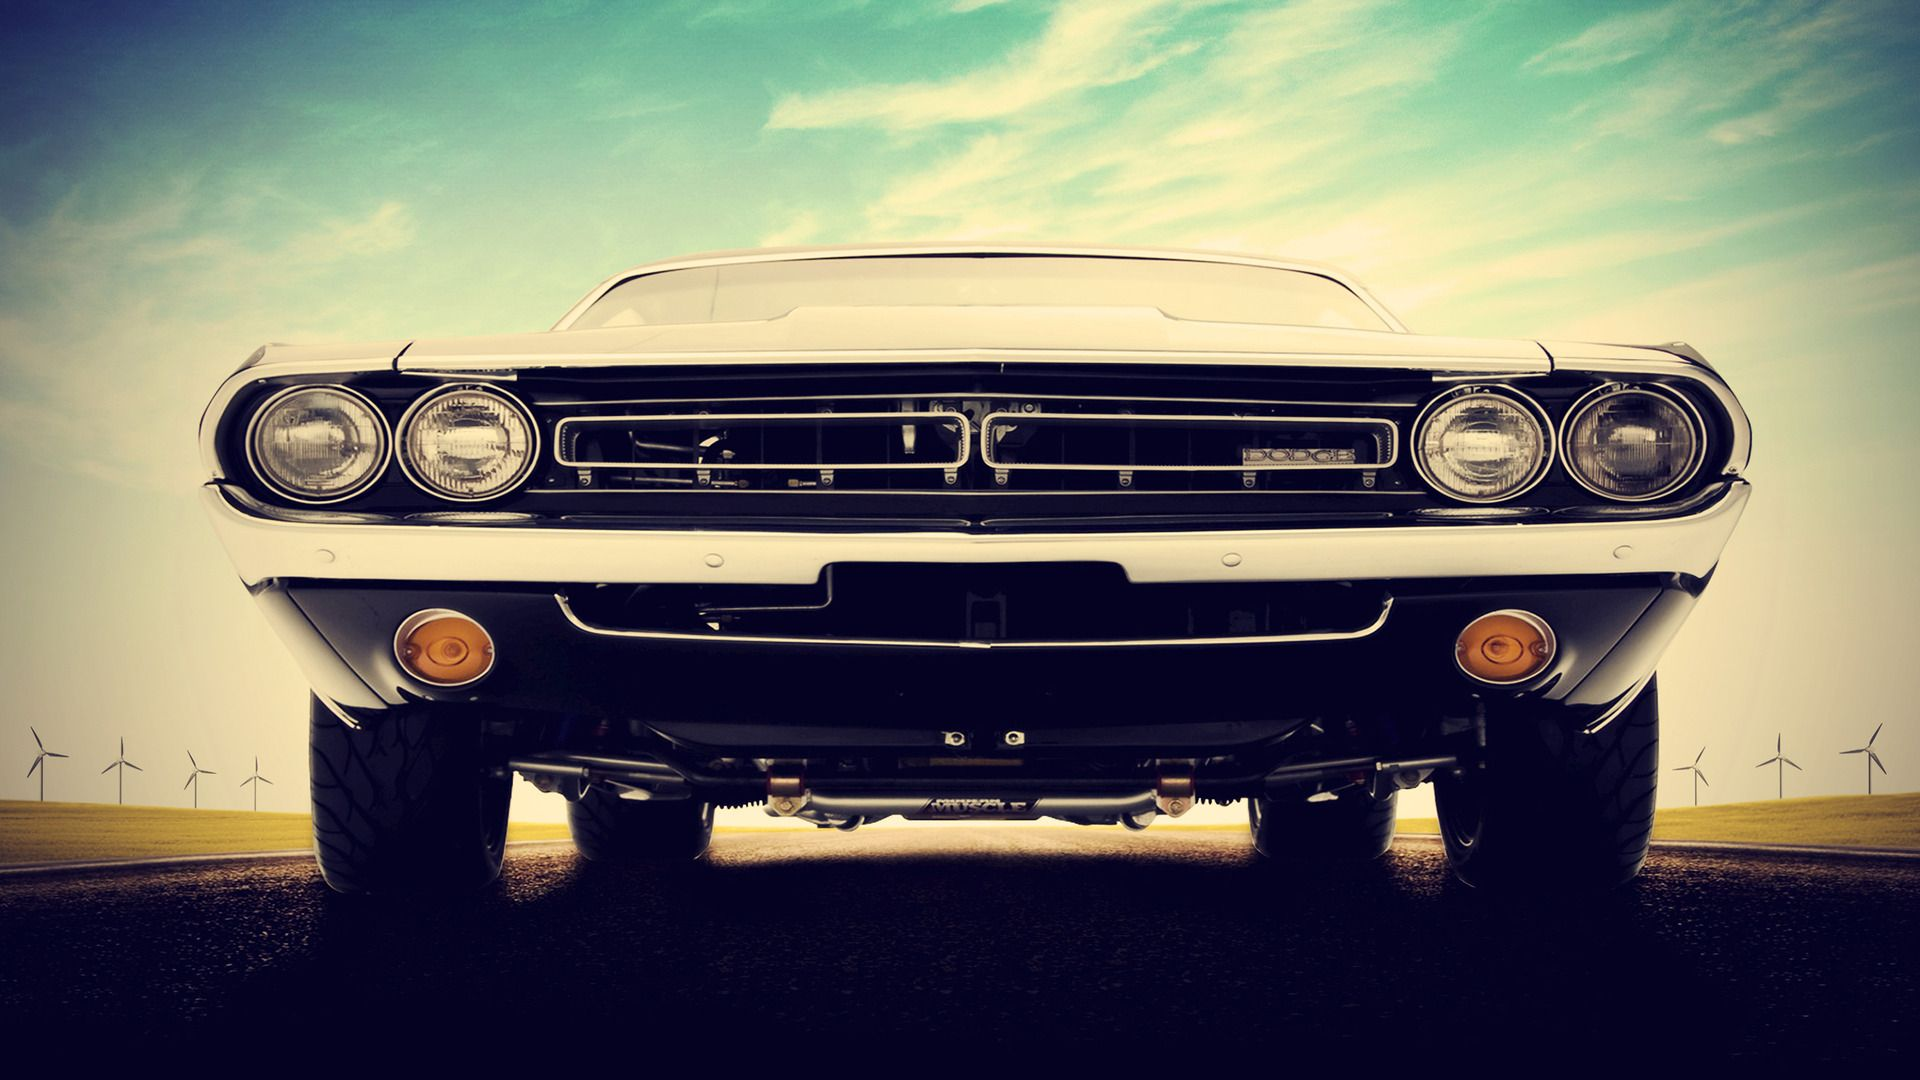 1970 Dodge Charger HD Background Wallpaper is hd wallpaper